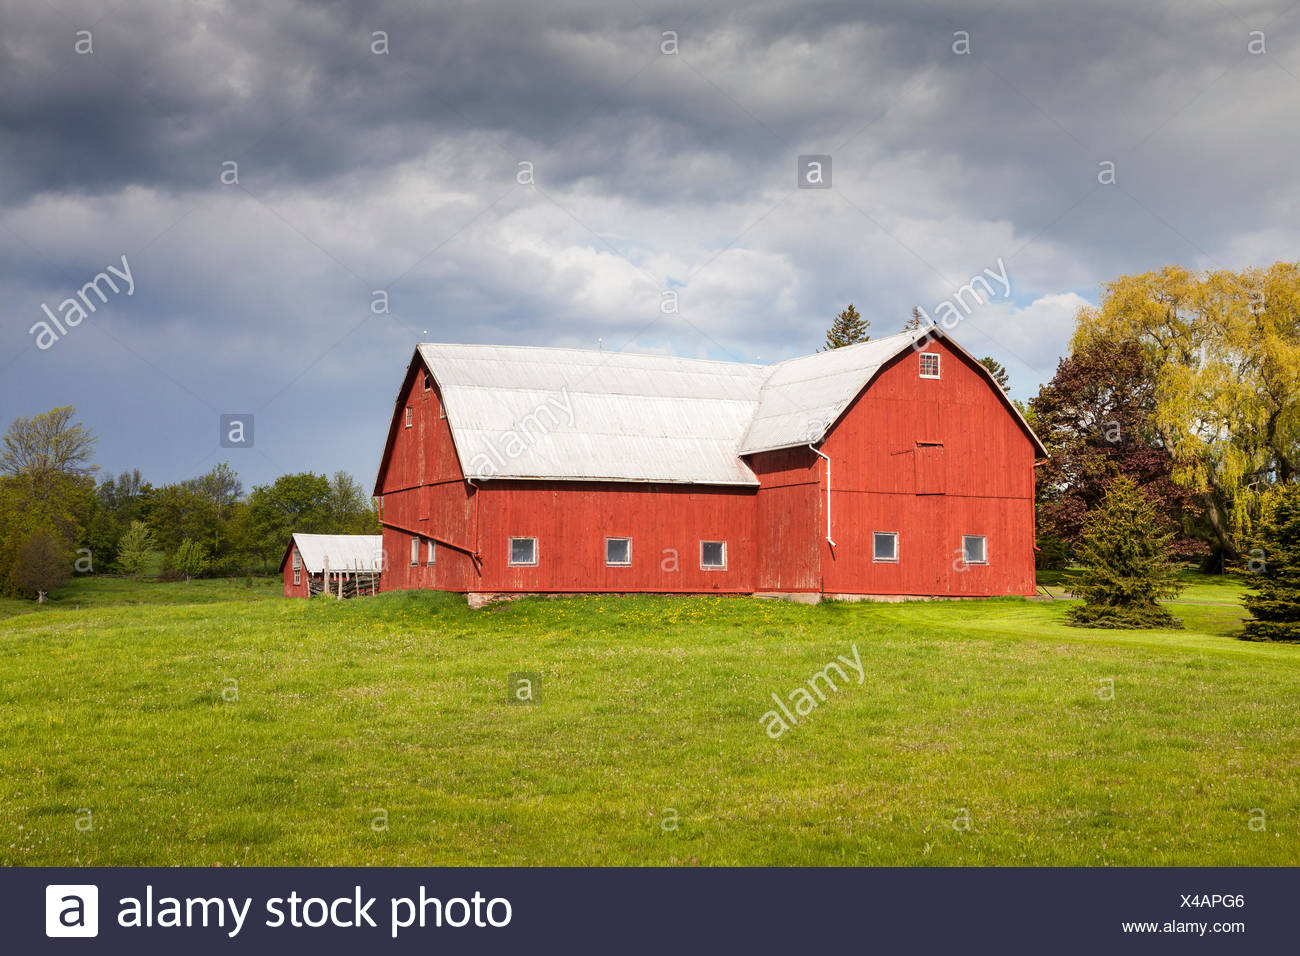 Red barn in Prince Edward County, Ontario, Canada - Stock Image